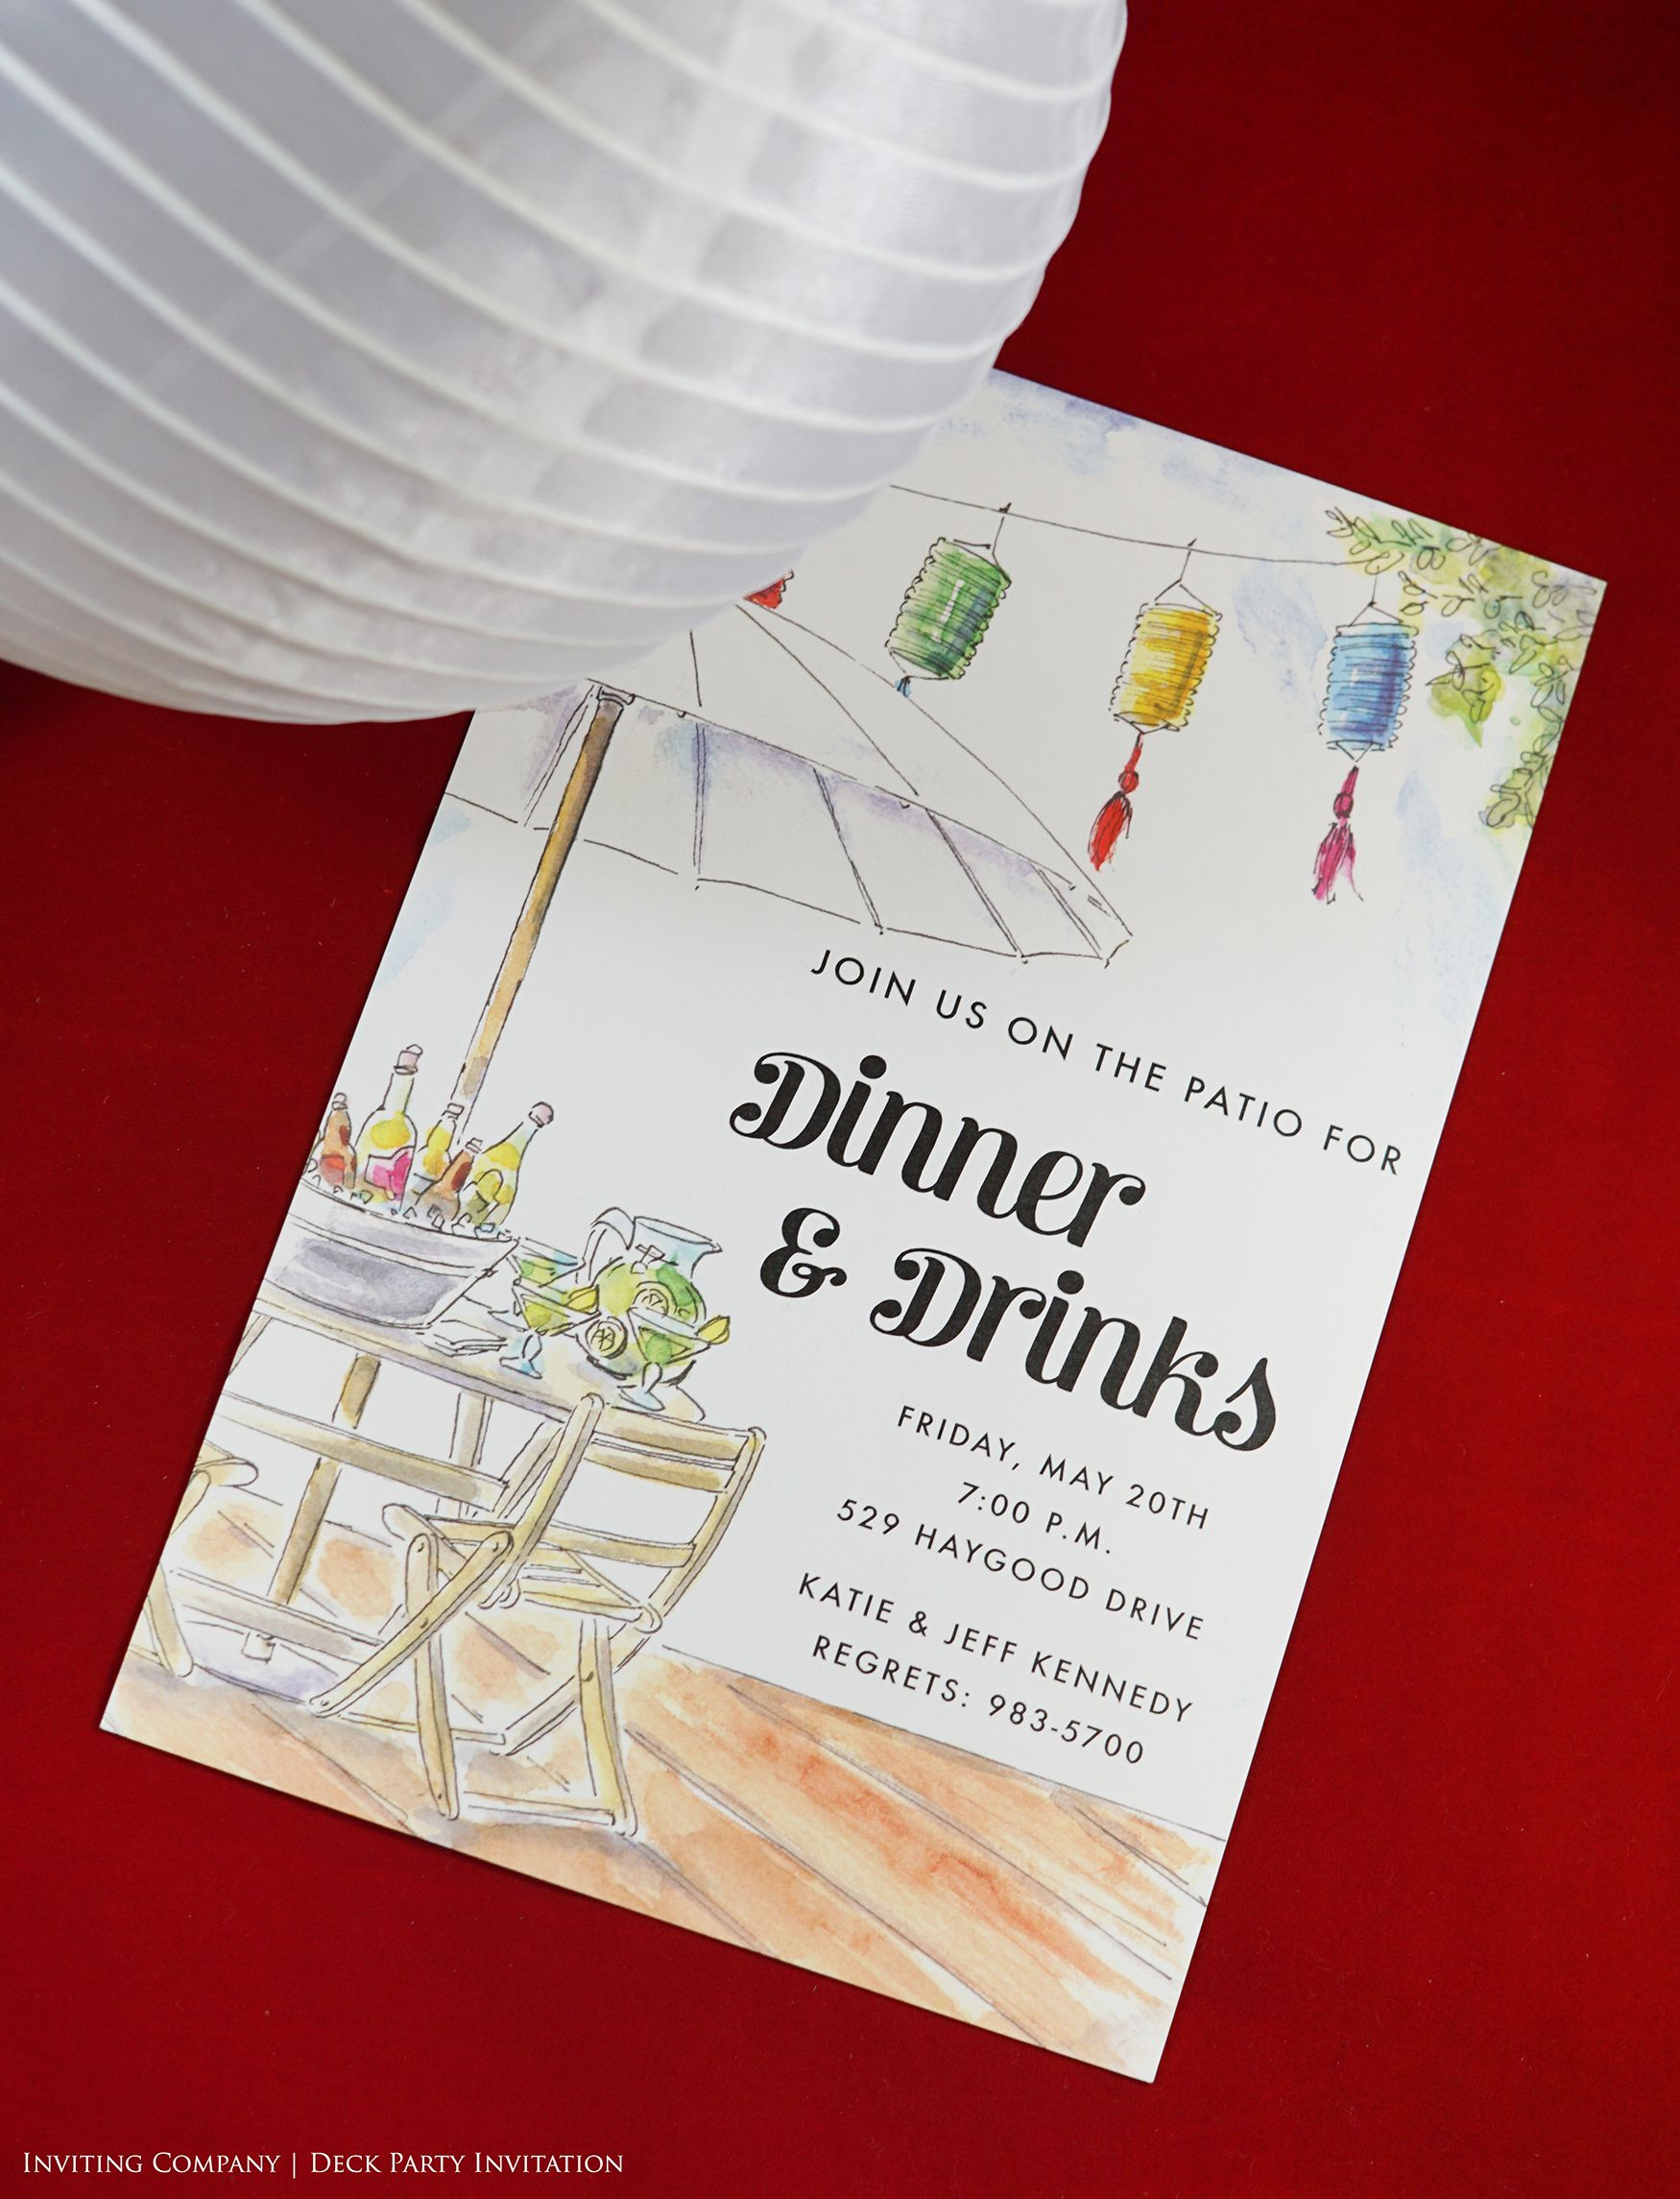 Deck Party Invitation | BBQ and Outdoor Parties | Pinterest | Deck ...